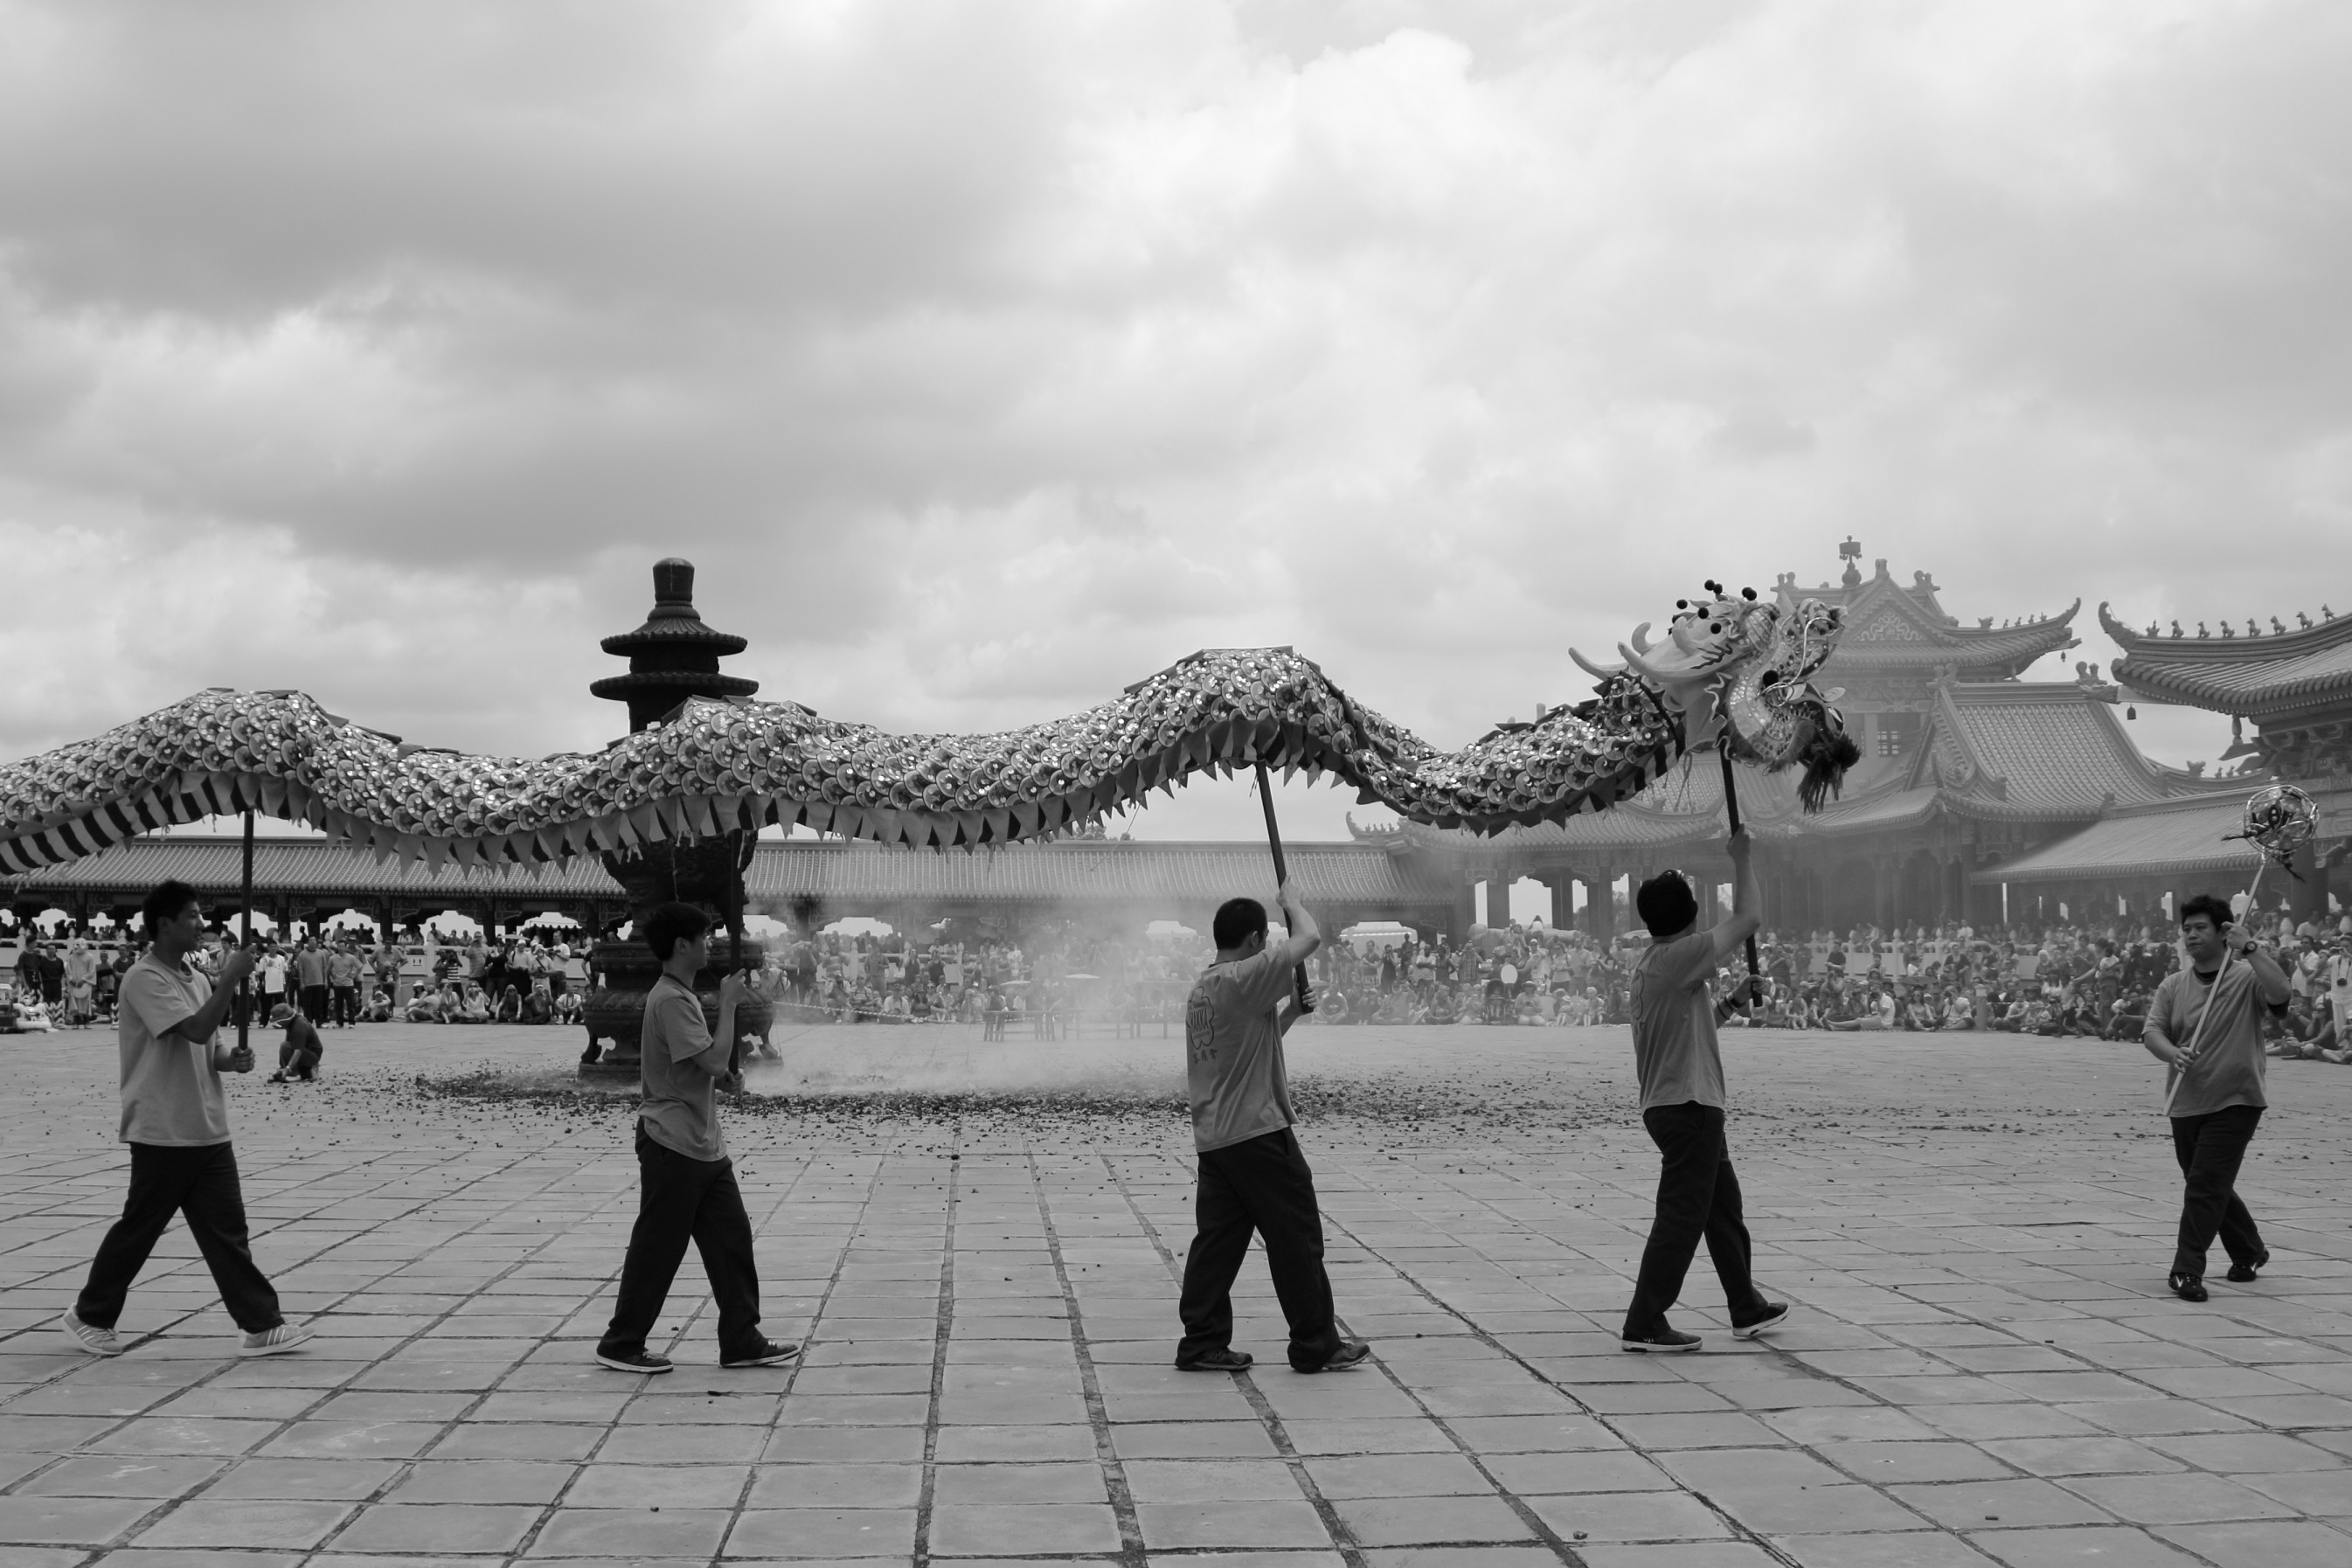 Dragon dance Nan Hua Temple Johannesburg South Africa - photo by Willem Viljoen